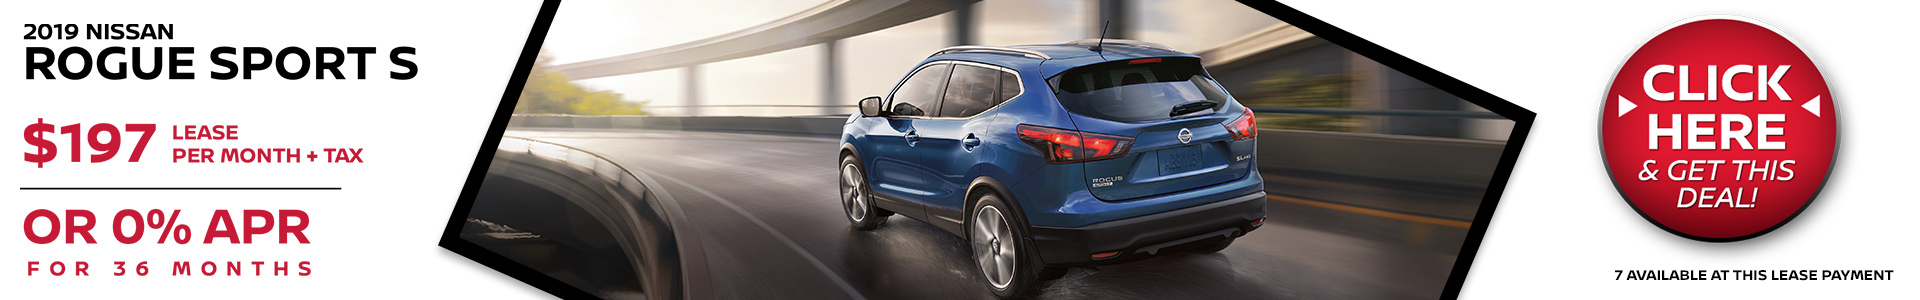 Mossy Nissan - Nissan Rogue Sport $197 Lease